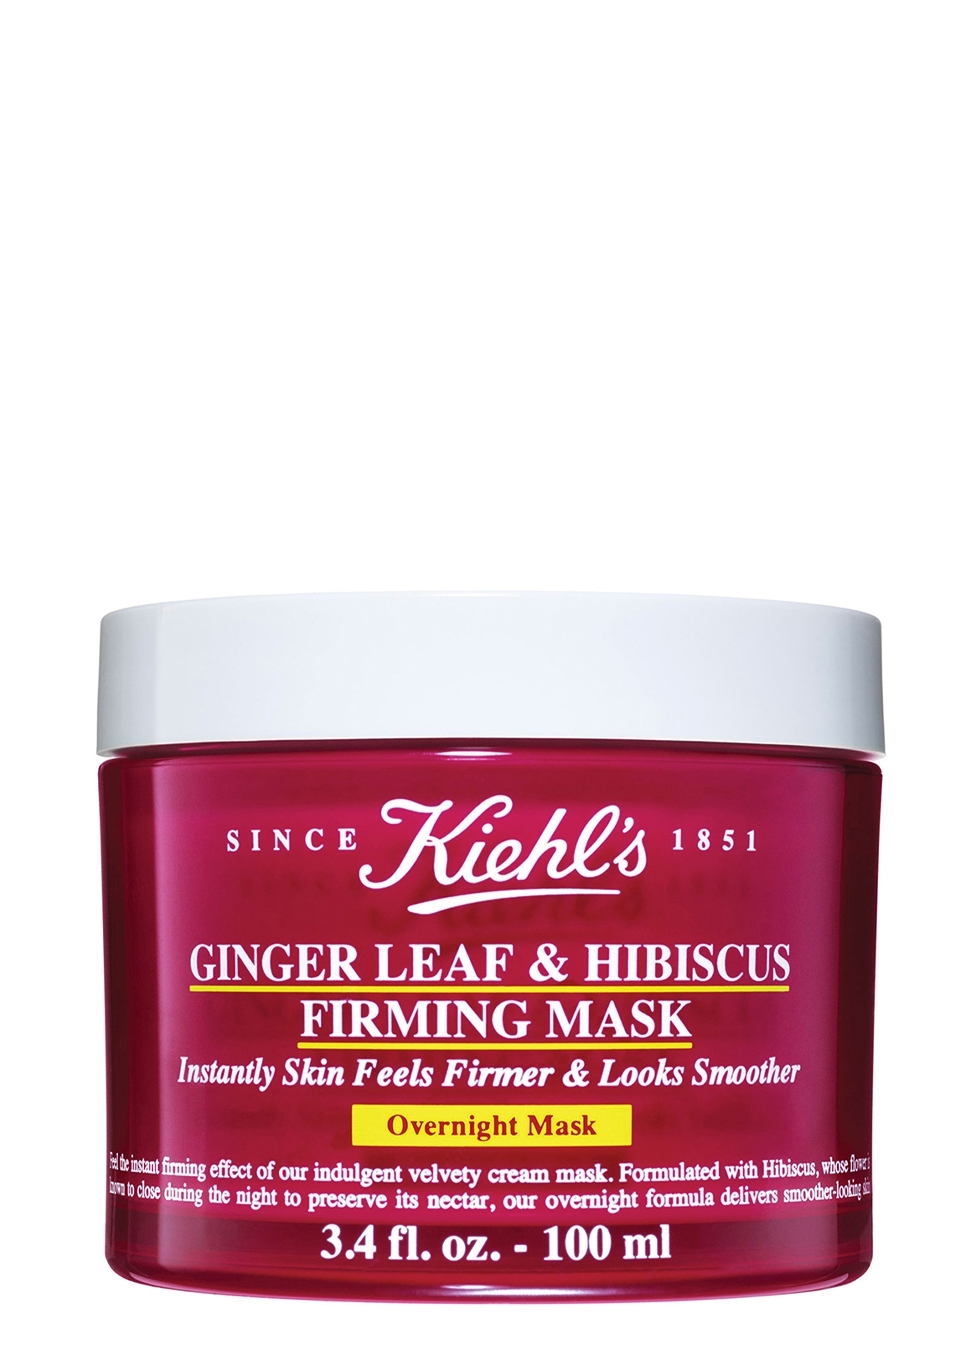 Ginger Leaf & Hibiscus Firming Mask 100ml